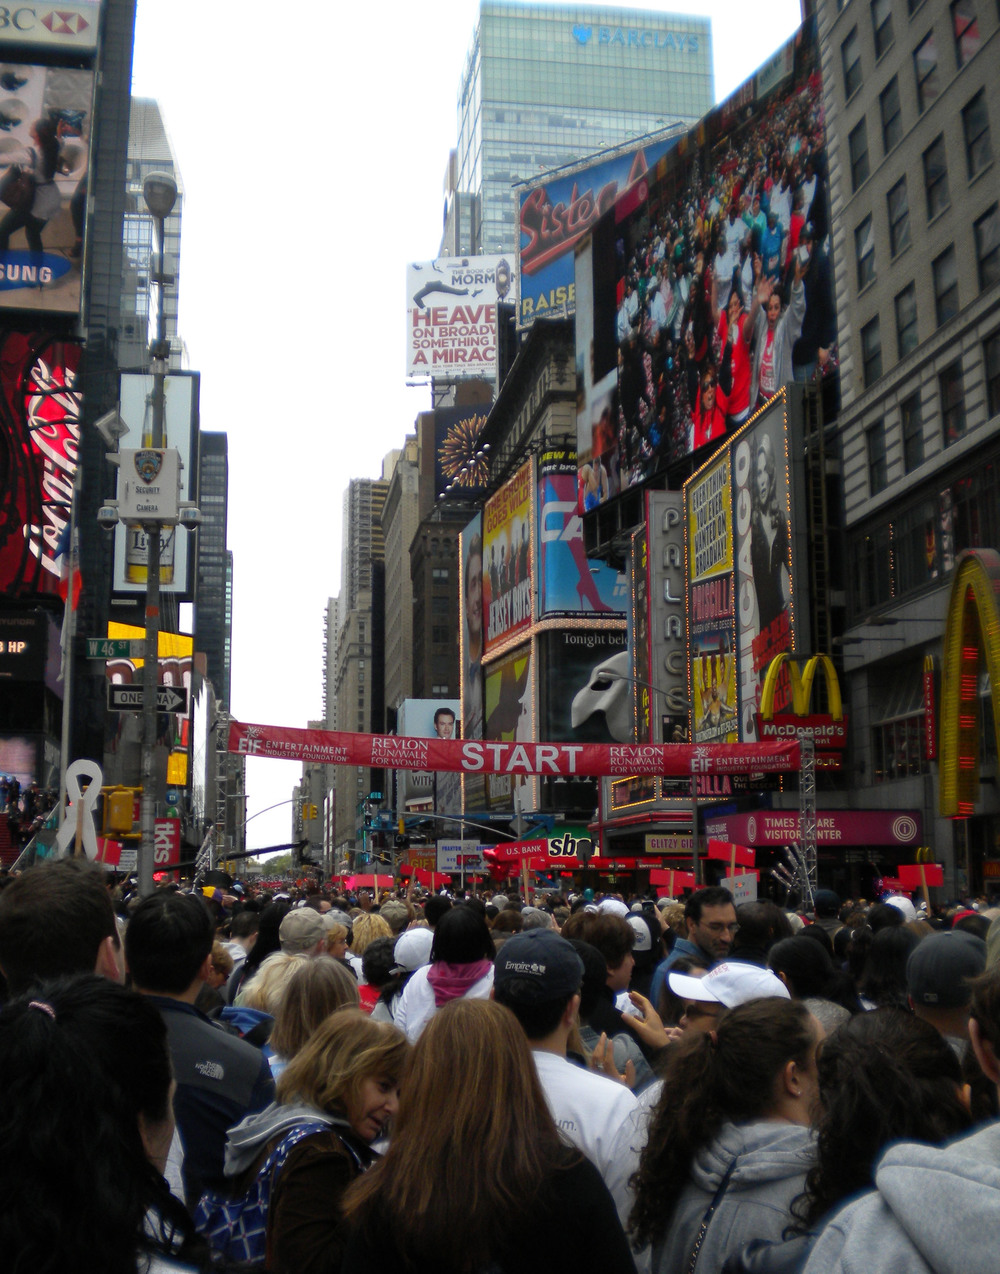 The EIF Revlon Run/Walk for Women's Cancers start line in Times Square